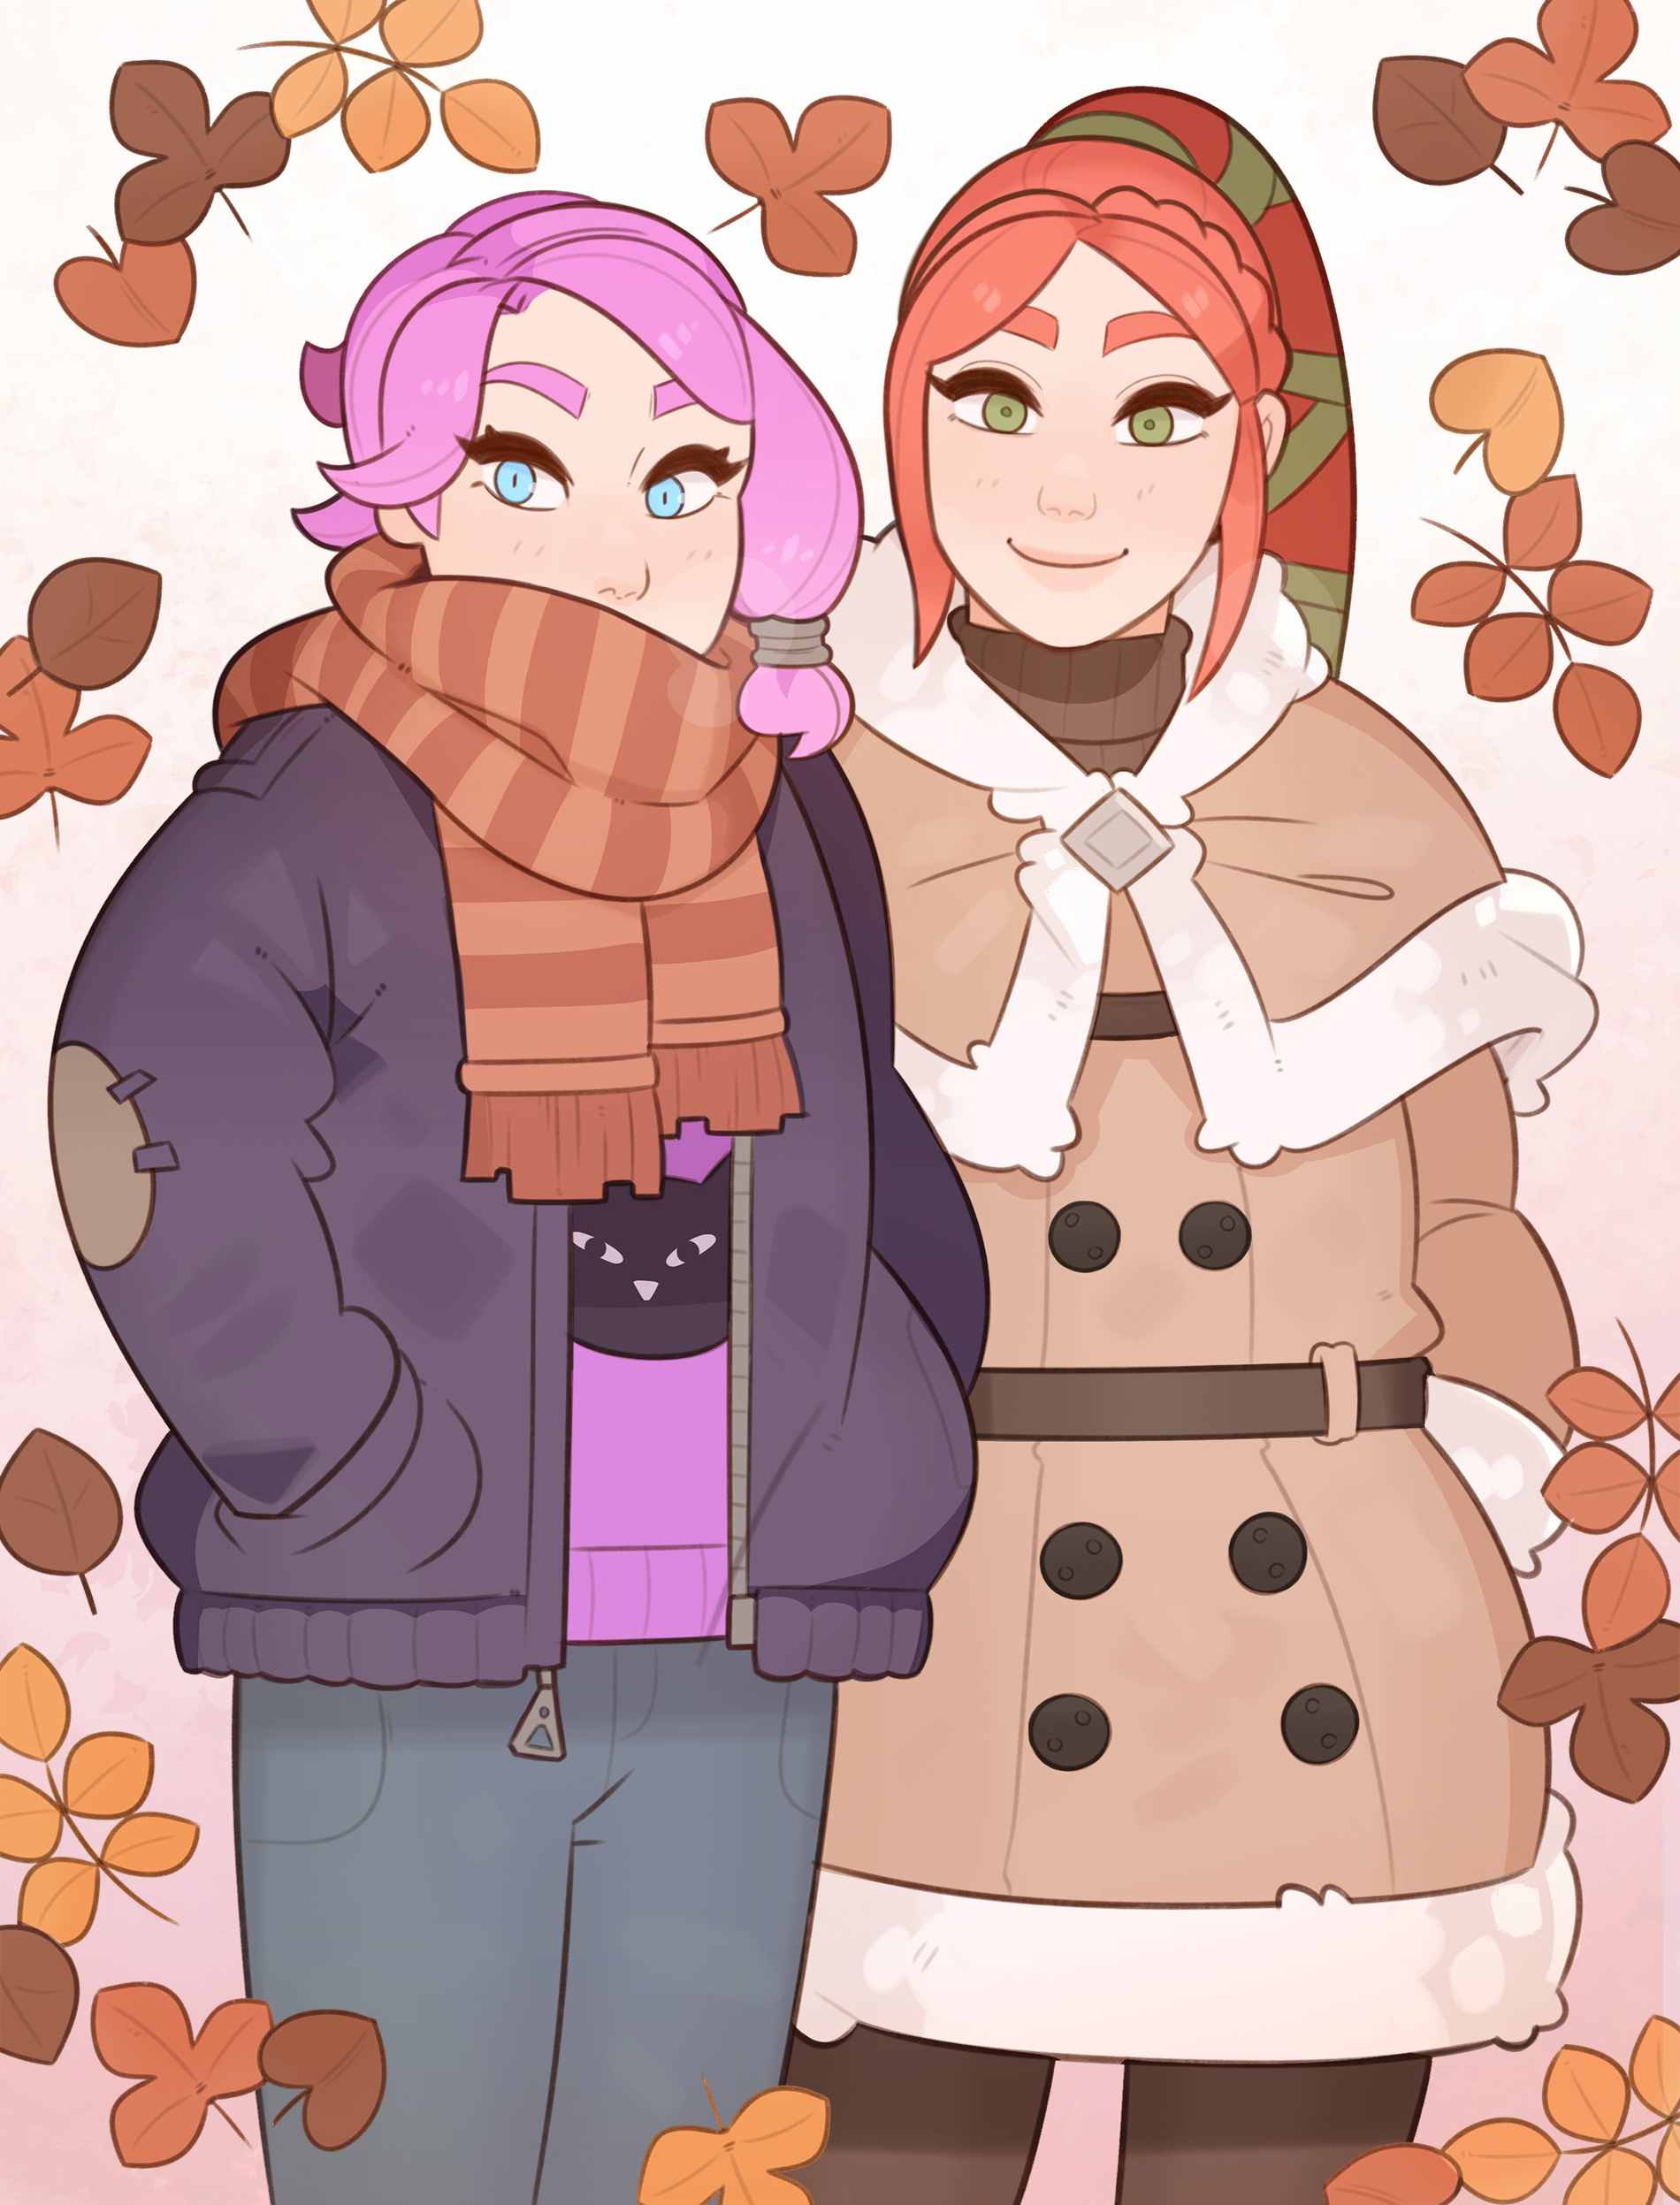 Paladins, Cassie and Maeve